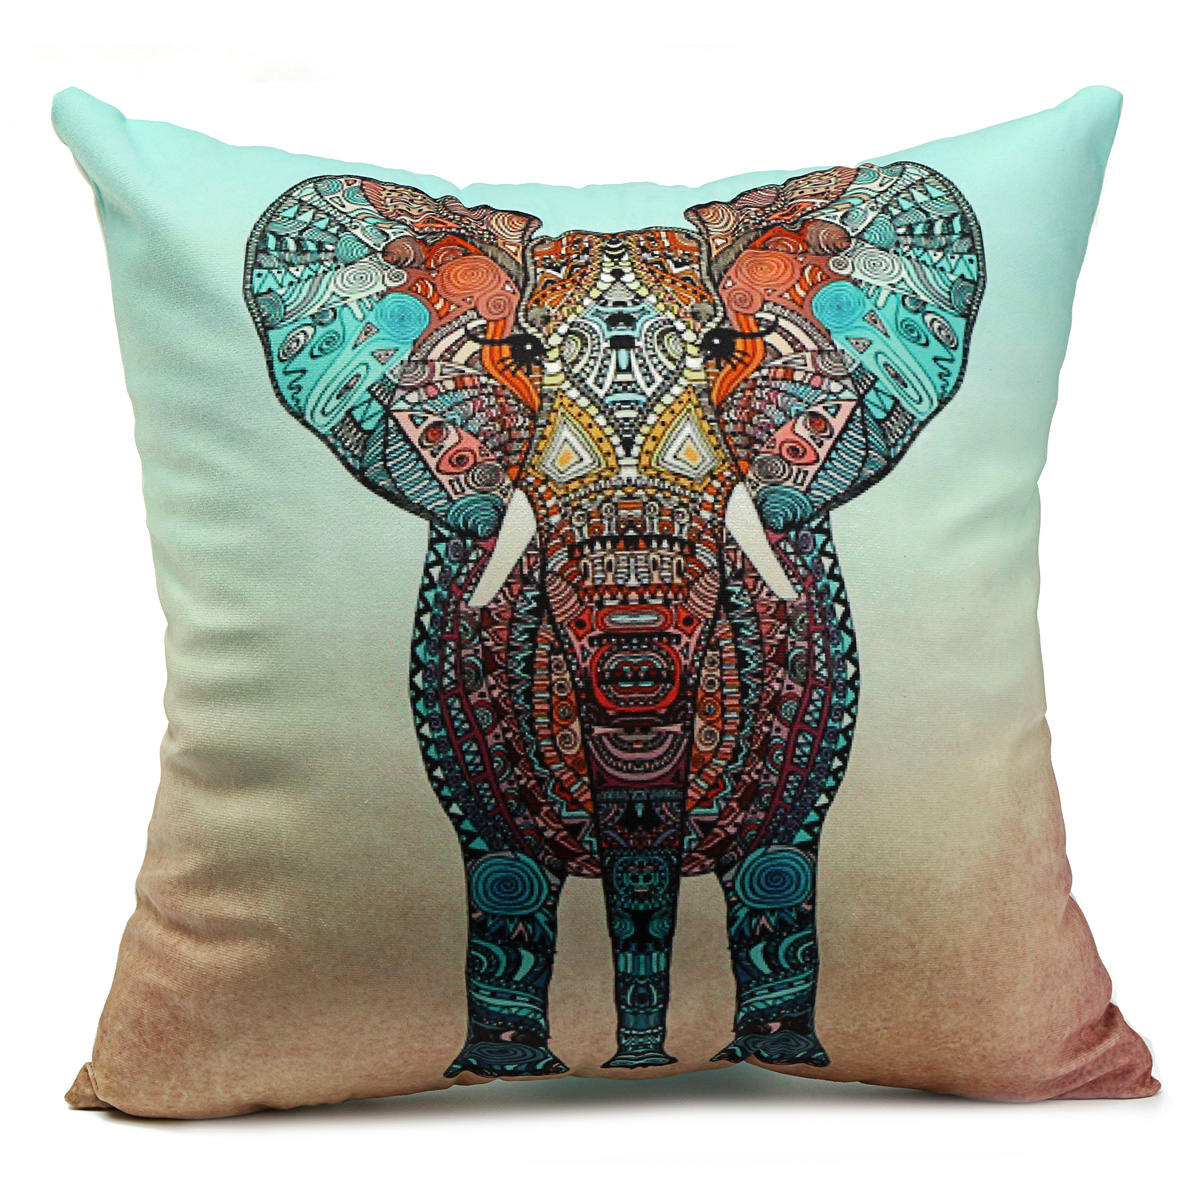 Velvet Colorful Elephant Throw Pillow Case Cushion Cover Car Home Sofa Decor Ebay